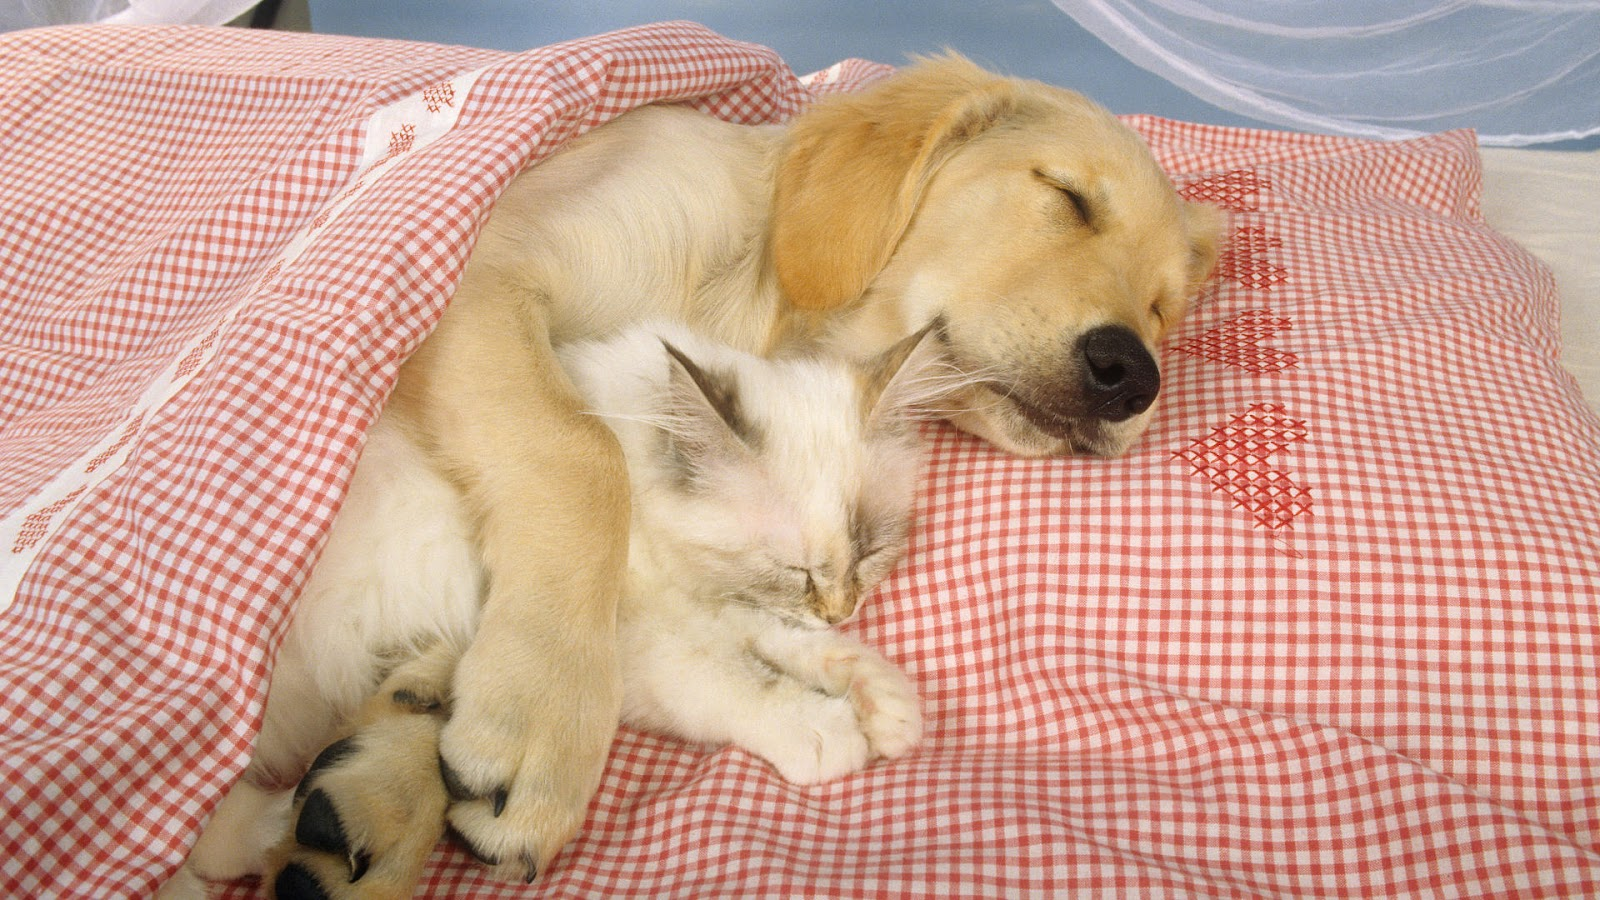 http://4.bp.blogspot.com/-69o26gX2Hbg/T1FWS5fpXbI/AAAAAAAAEAk/gXJMOWf-Q-Q/s1600/a_cat_and_dog_sleeping_together_in_a_bed_with_the_dogs_paws_wrapped_around_the_cat.1920x1080.6d4087d2.jpg